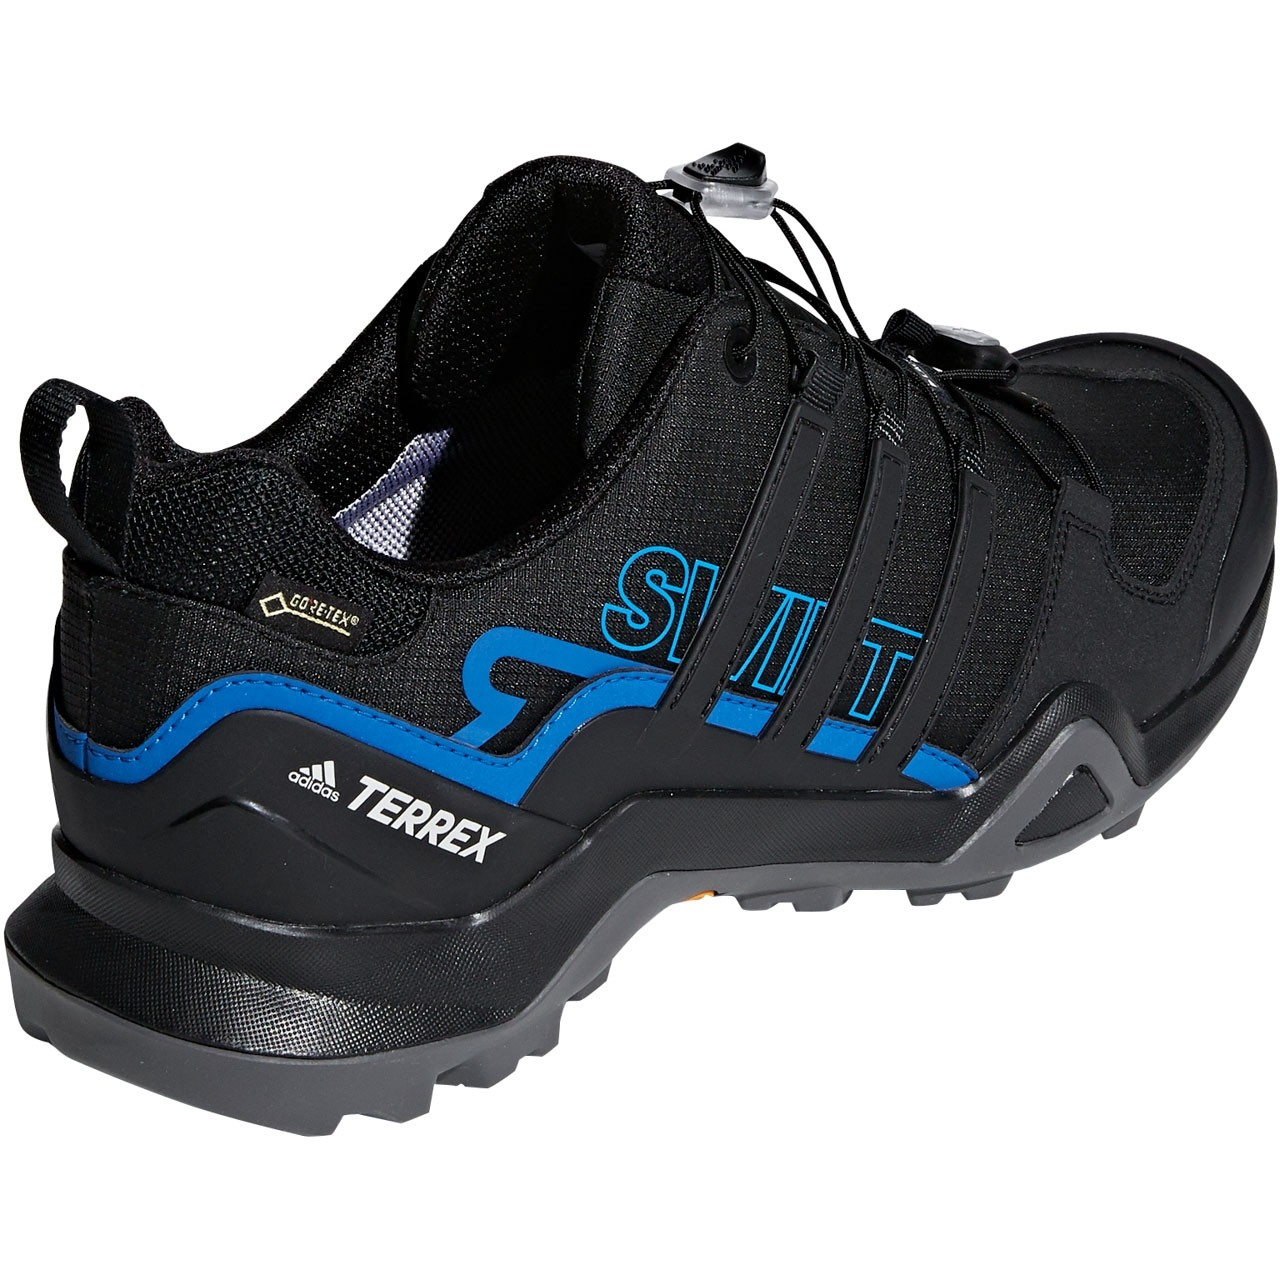 Adidas Terrex Swift R2 GTX Men's Approach Shoe - Core Black/Bright Blue